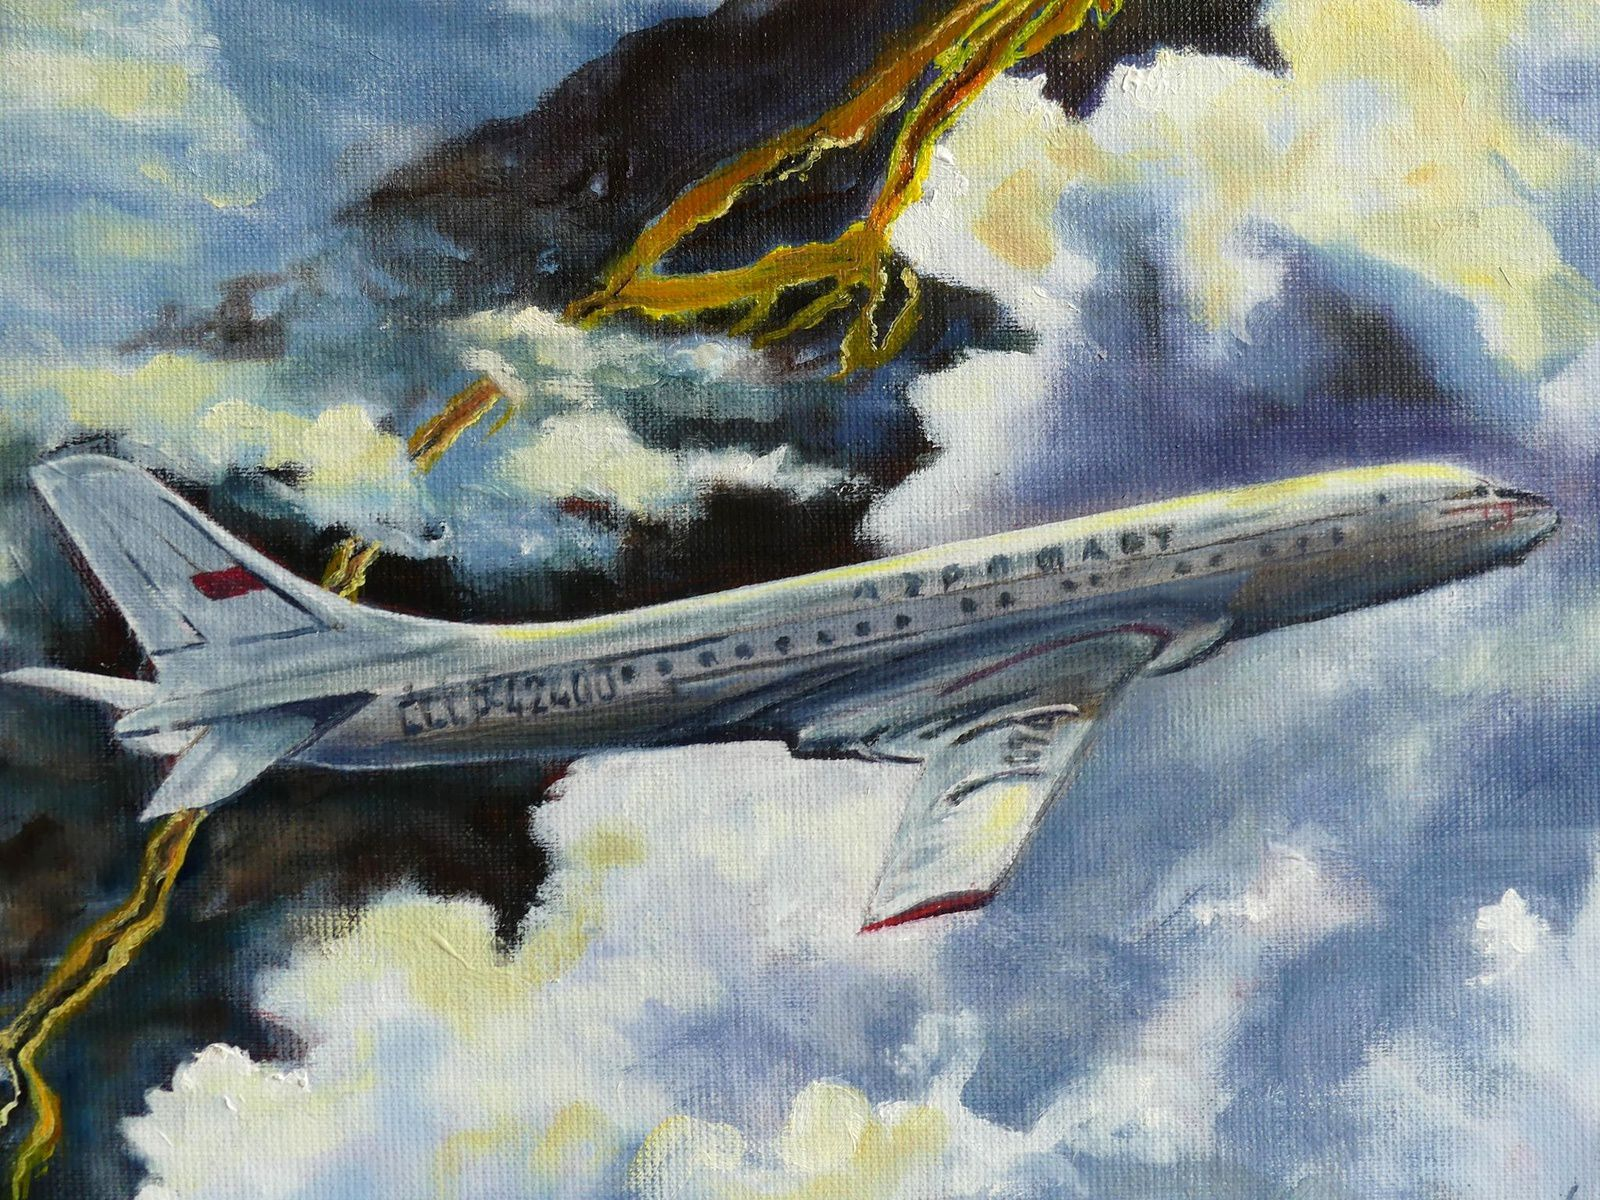 """Interception on Eruption"", painting on canvas by Jocelyn Lardy - detail"